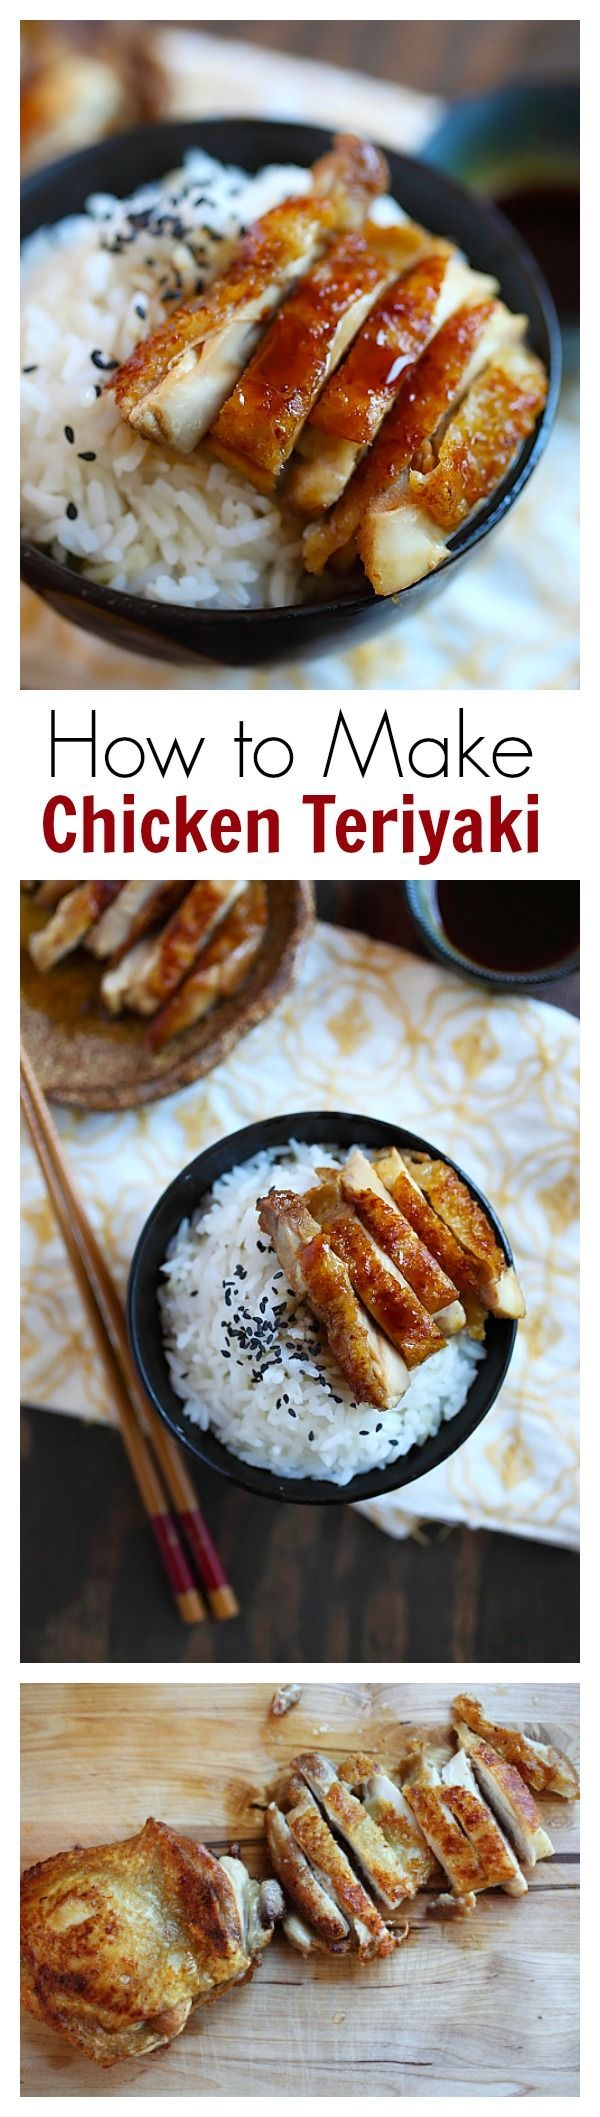 How to make chicken teriyaki? EASY recipe for teriyaki sauce plus chicken teriyaki that tastes like Japanese restaurants